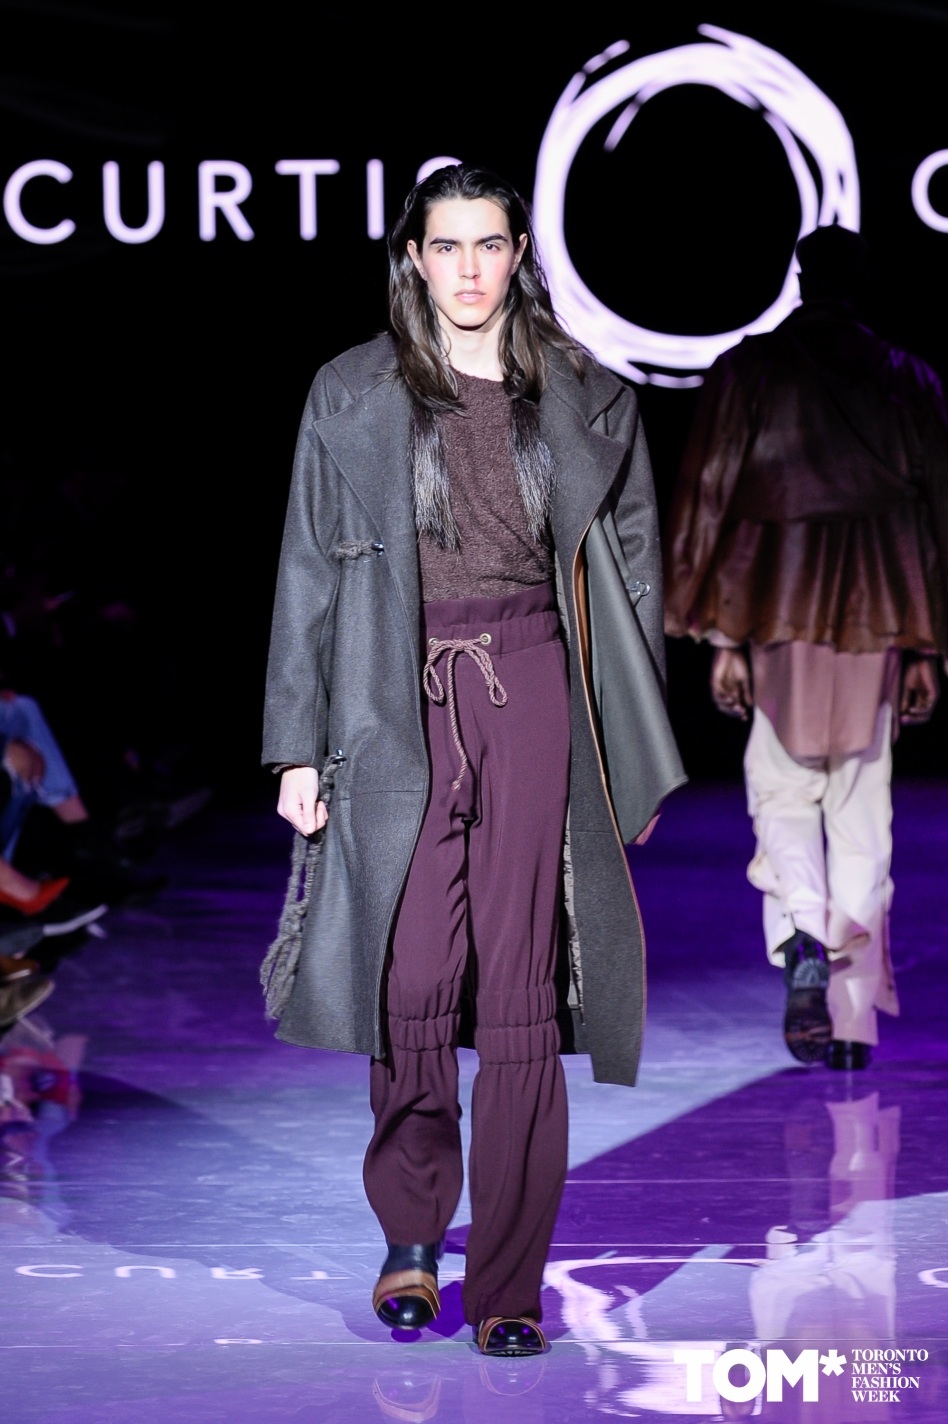 Curtis_Oland_TOMFW17_Che_Rosales-LARAWAN-0283